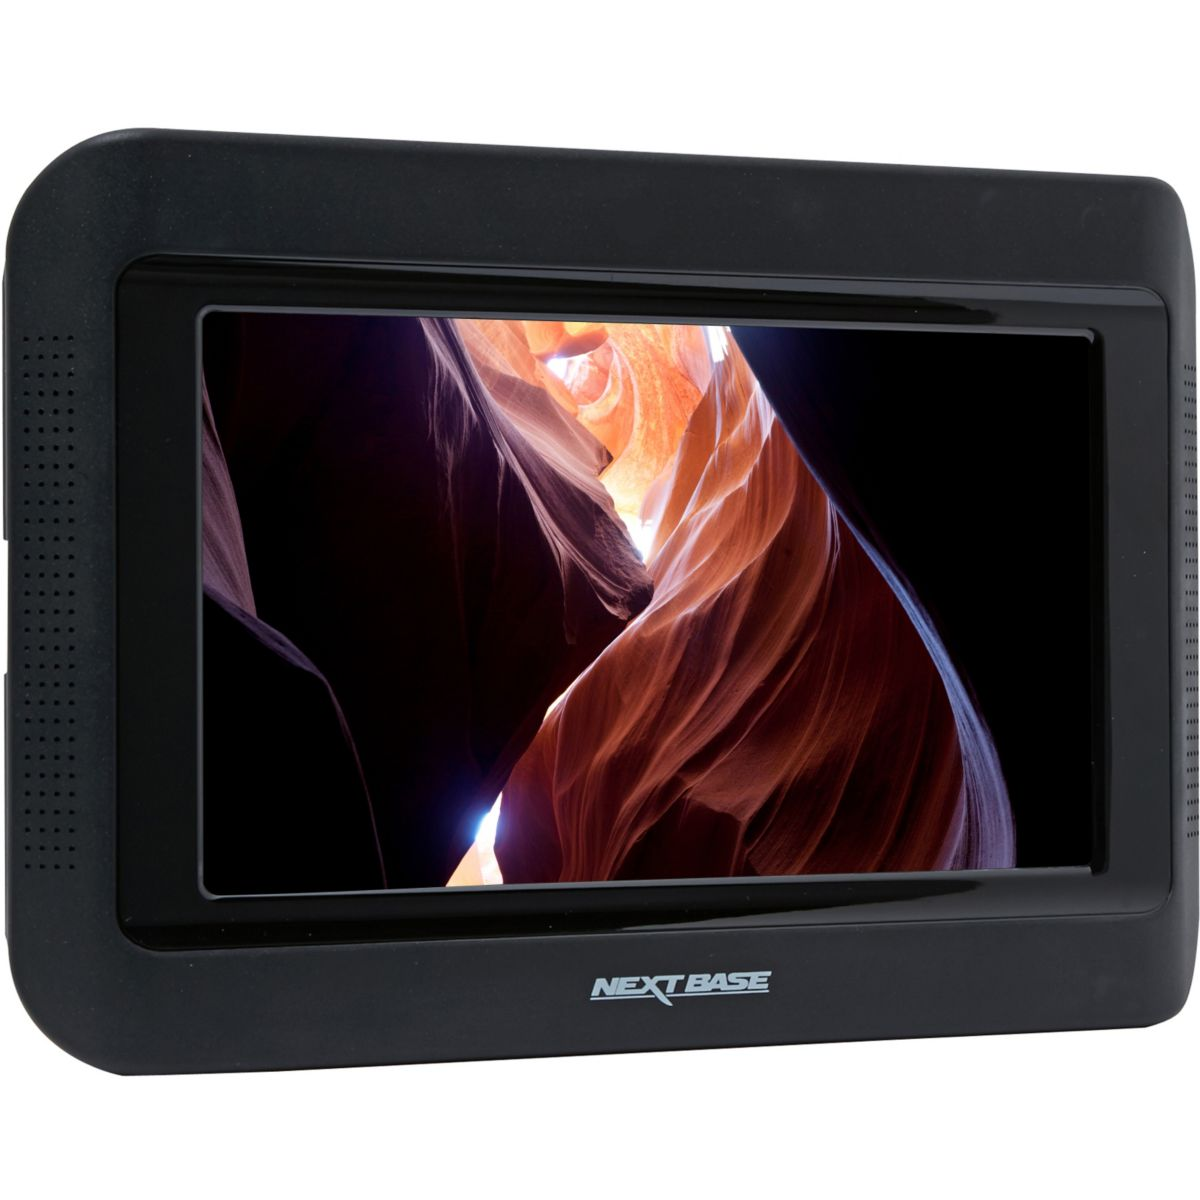 Lecteur DVD portable NEXT BASE NEXT 9 Lite Uno (photo)